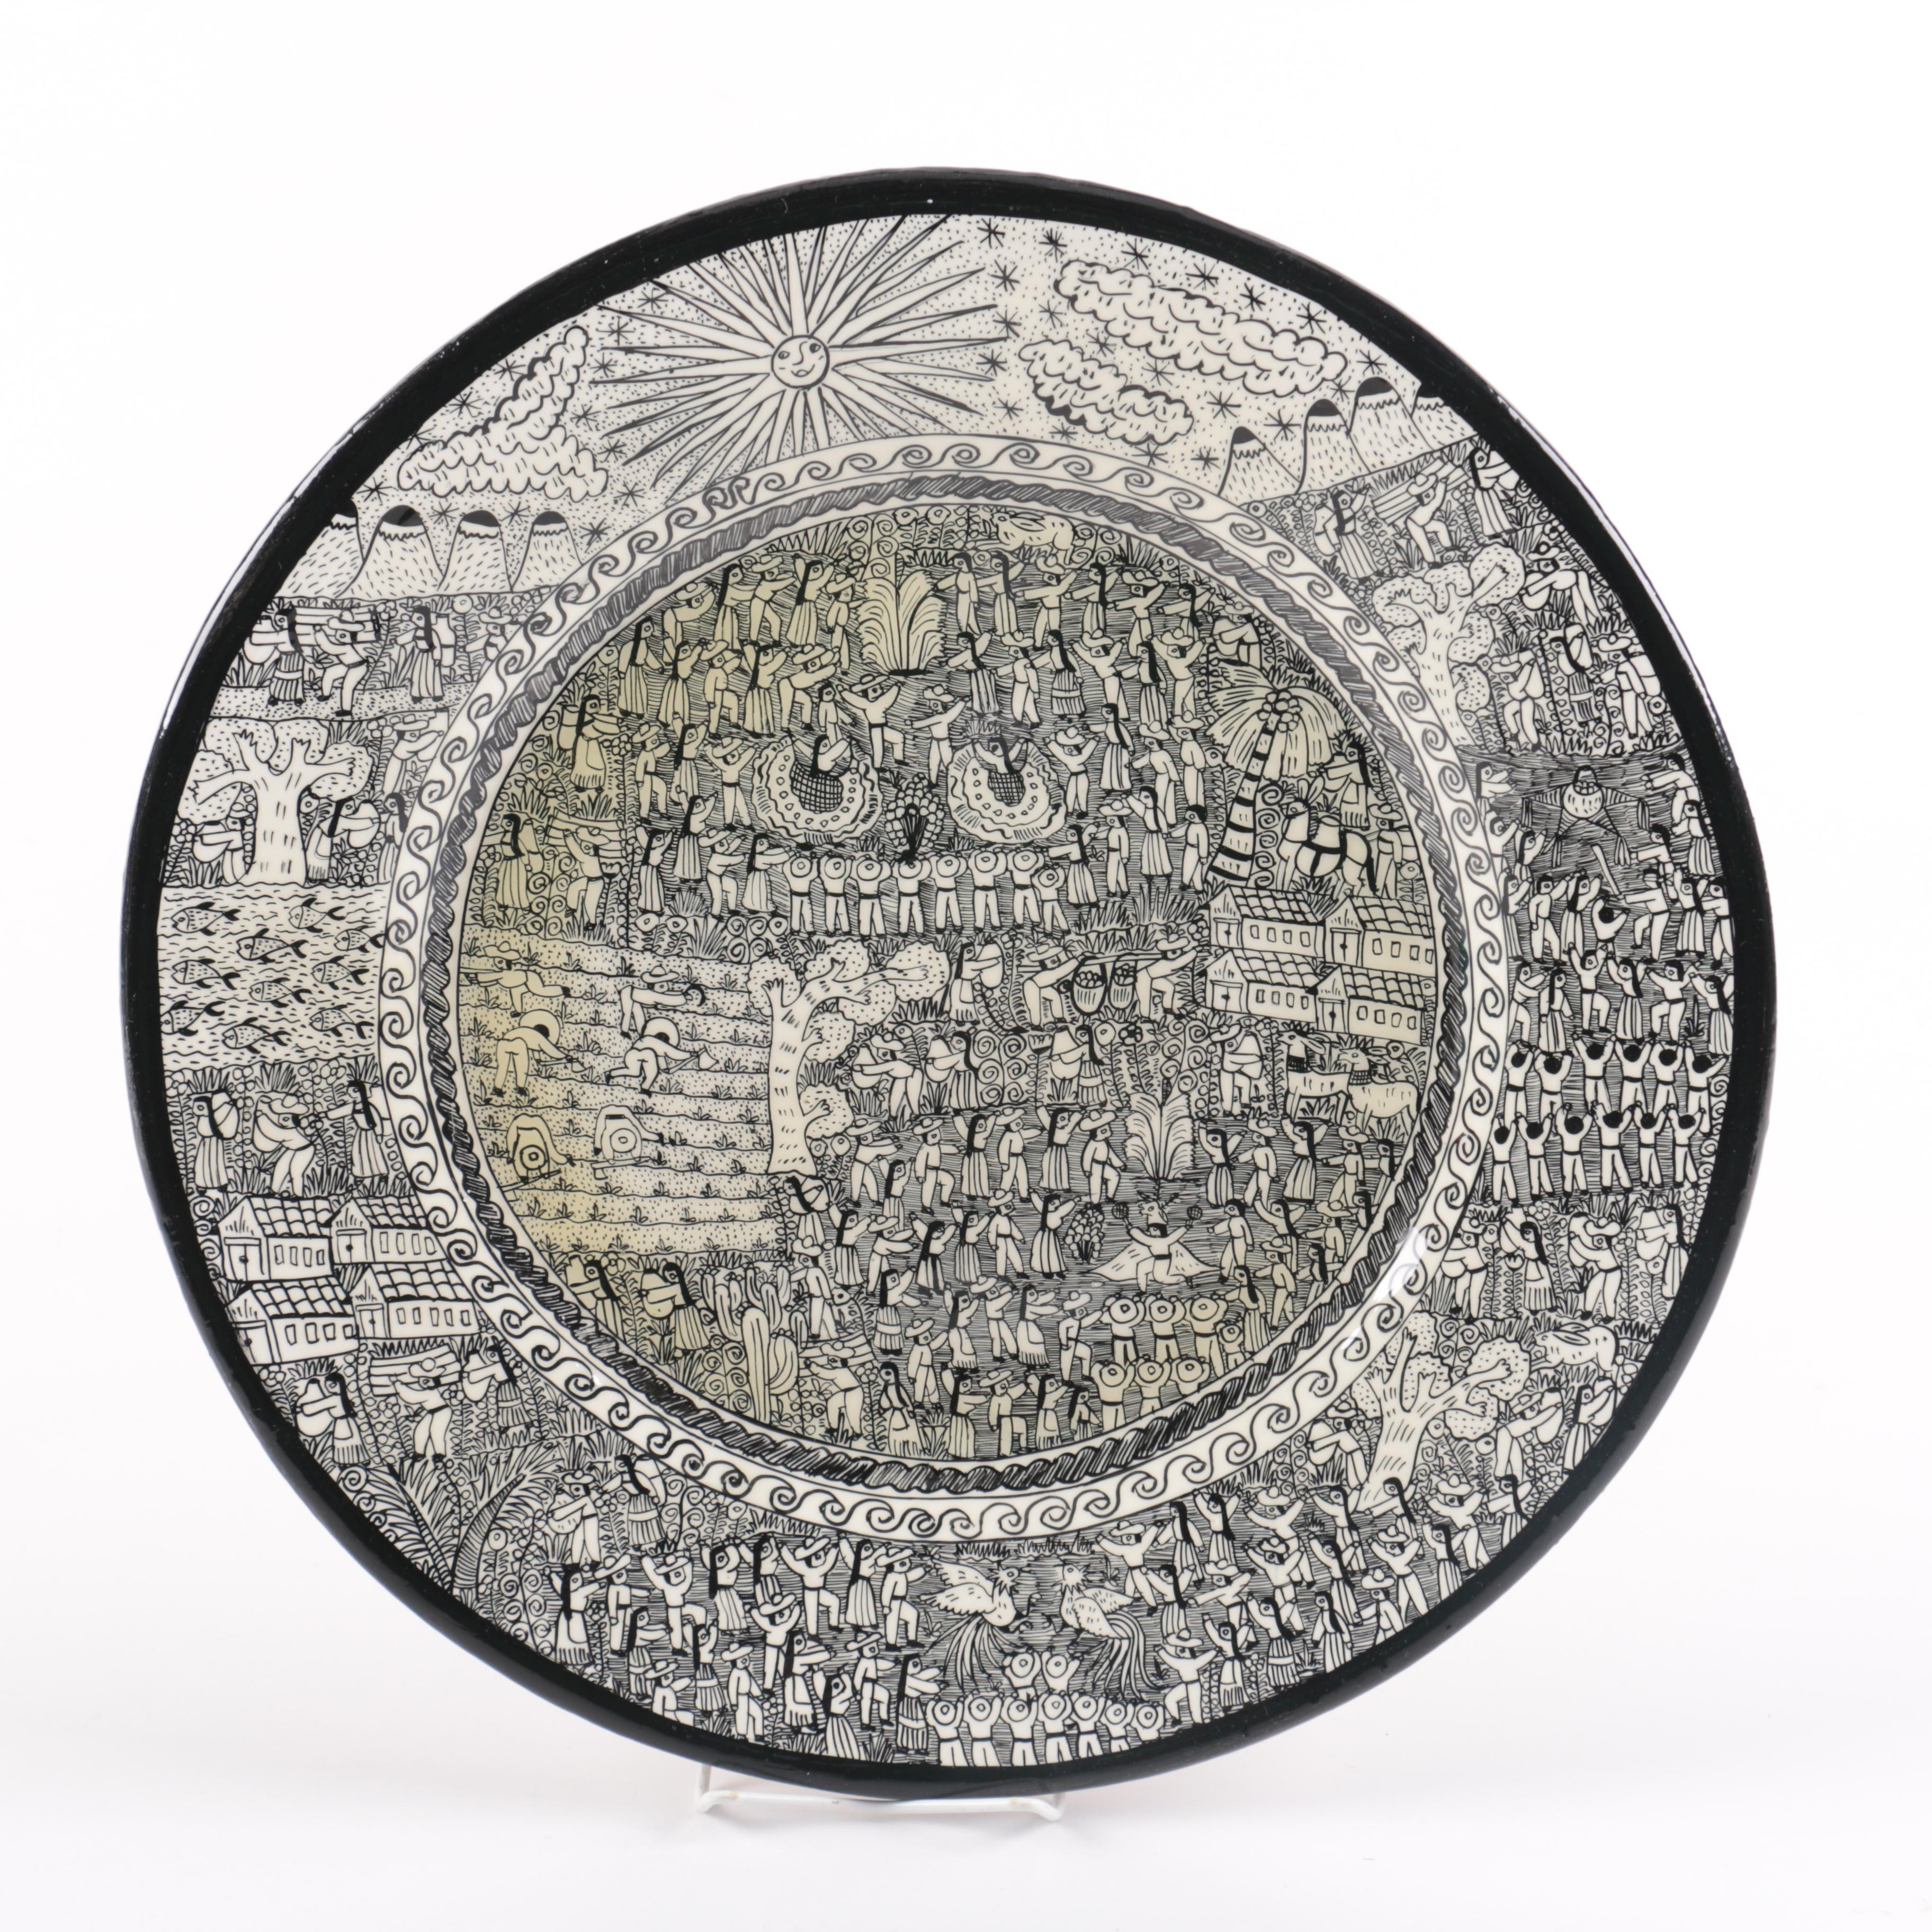 South American Inspired Decorative Charger Plate